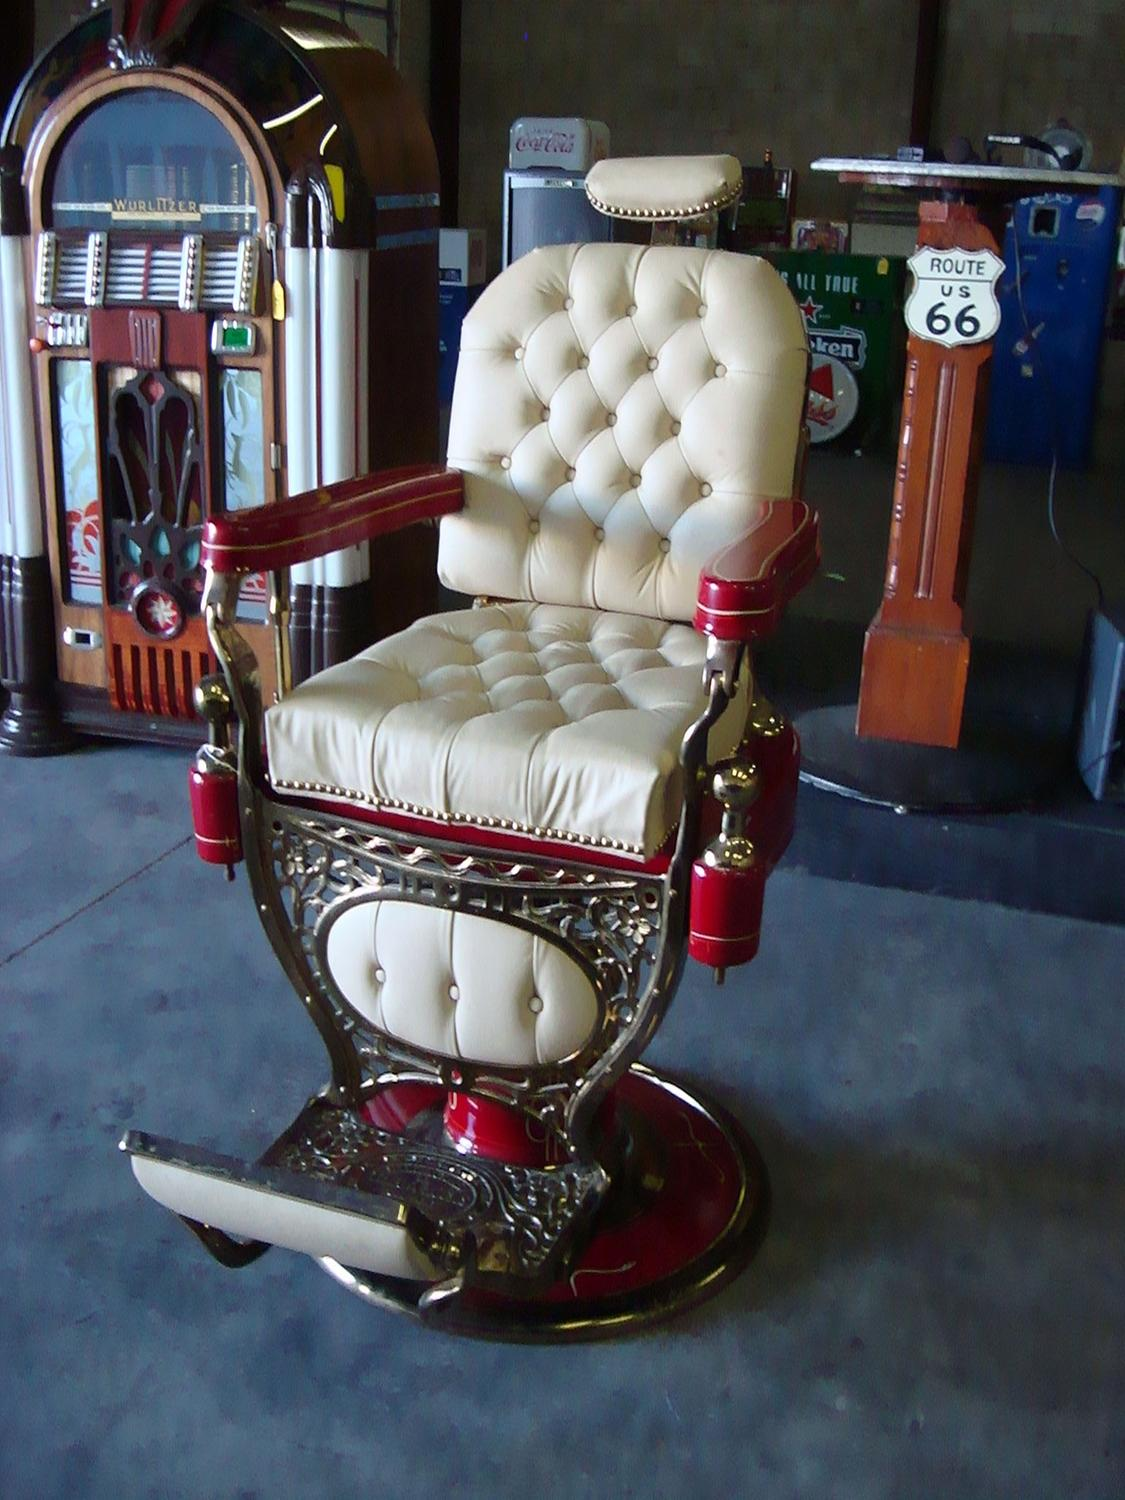 the finest barber chair on planet earth drake al capone u0026 history loading zoom - Barber Chairs For Sale